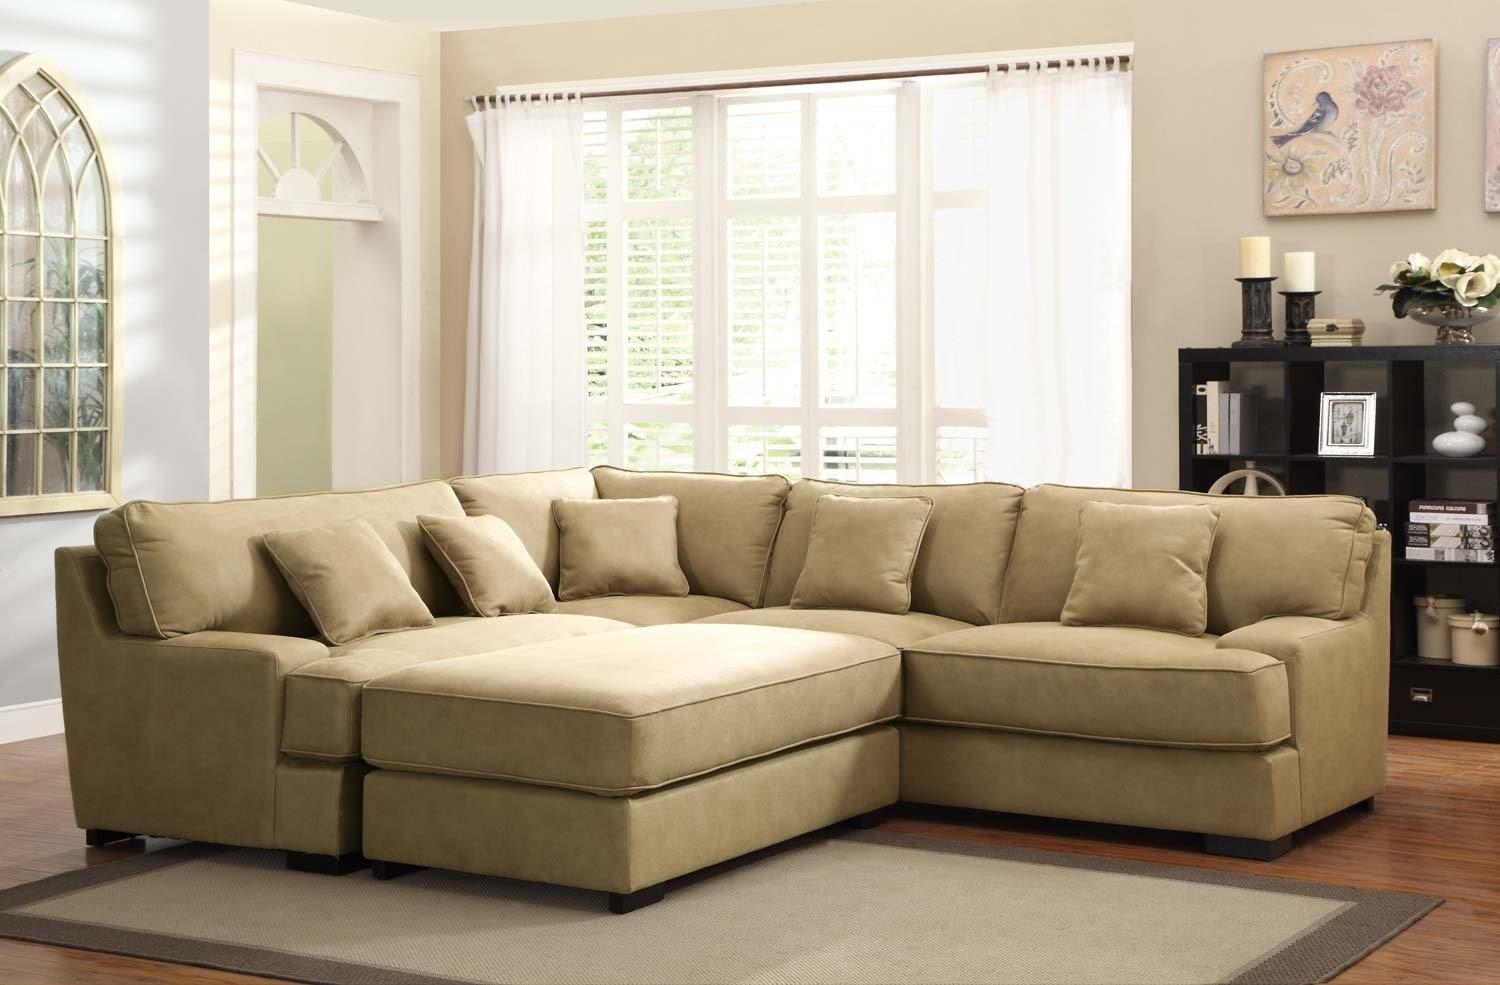 2018 Latest Oversized Sectional Sofa Sofa Ideas